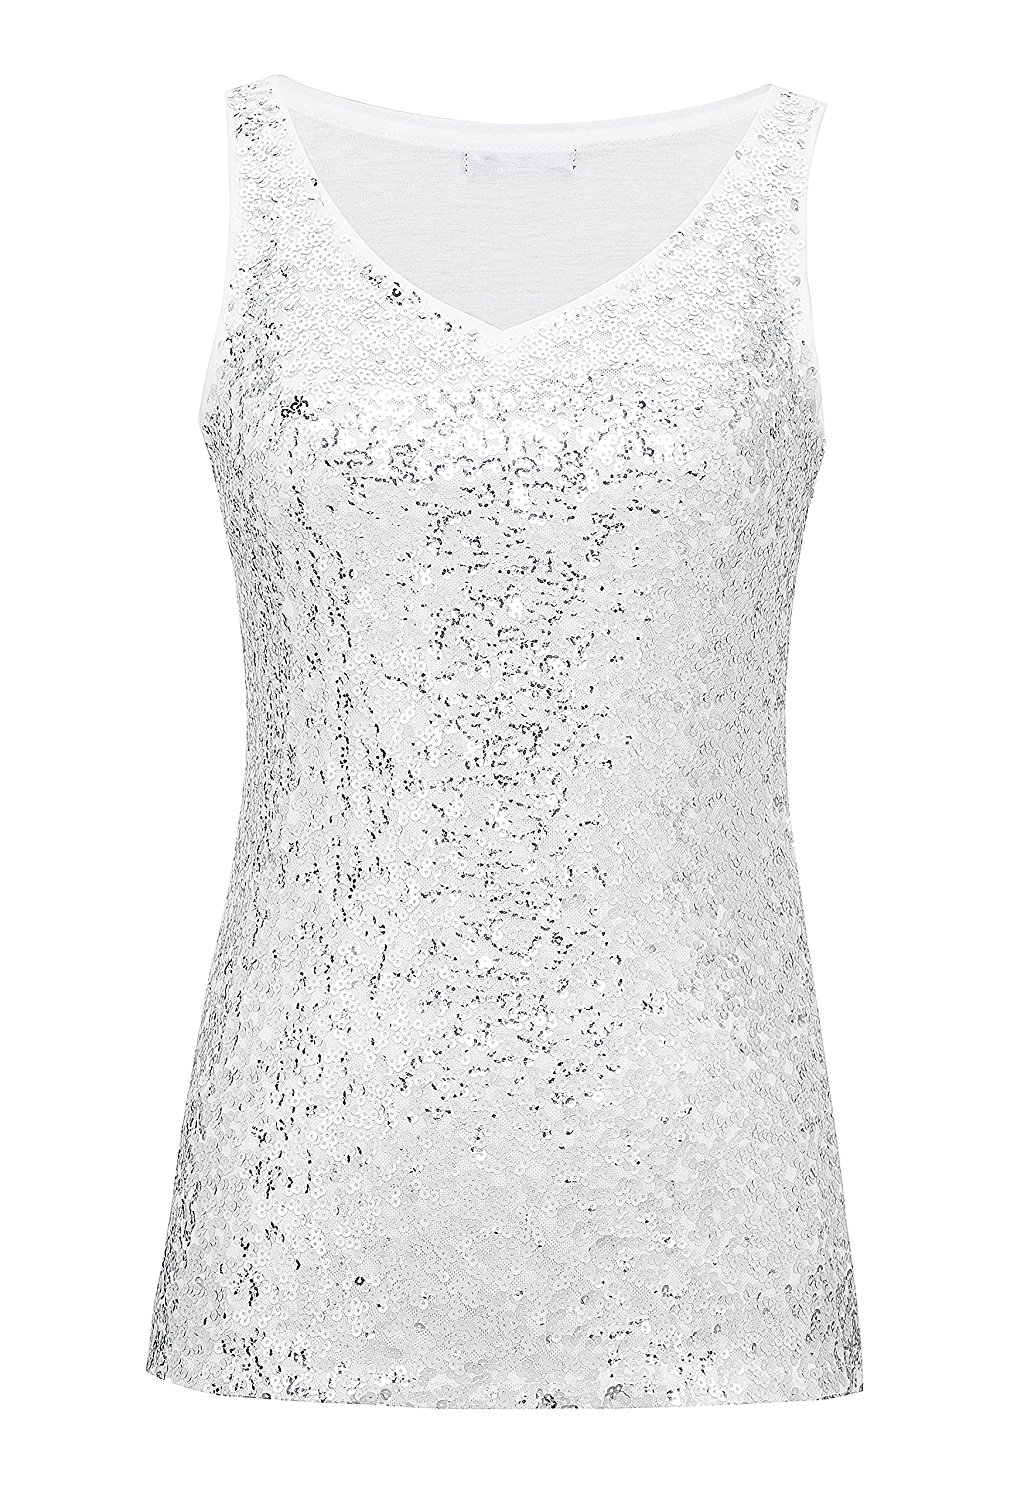 3e786ed68d6c5 Get Quotations · Metme Sleeveless Shirt V Neck Sequin Embellished  Close-Fitting Tank Tops Vest Tops For Women